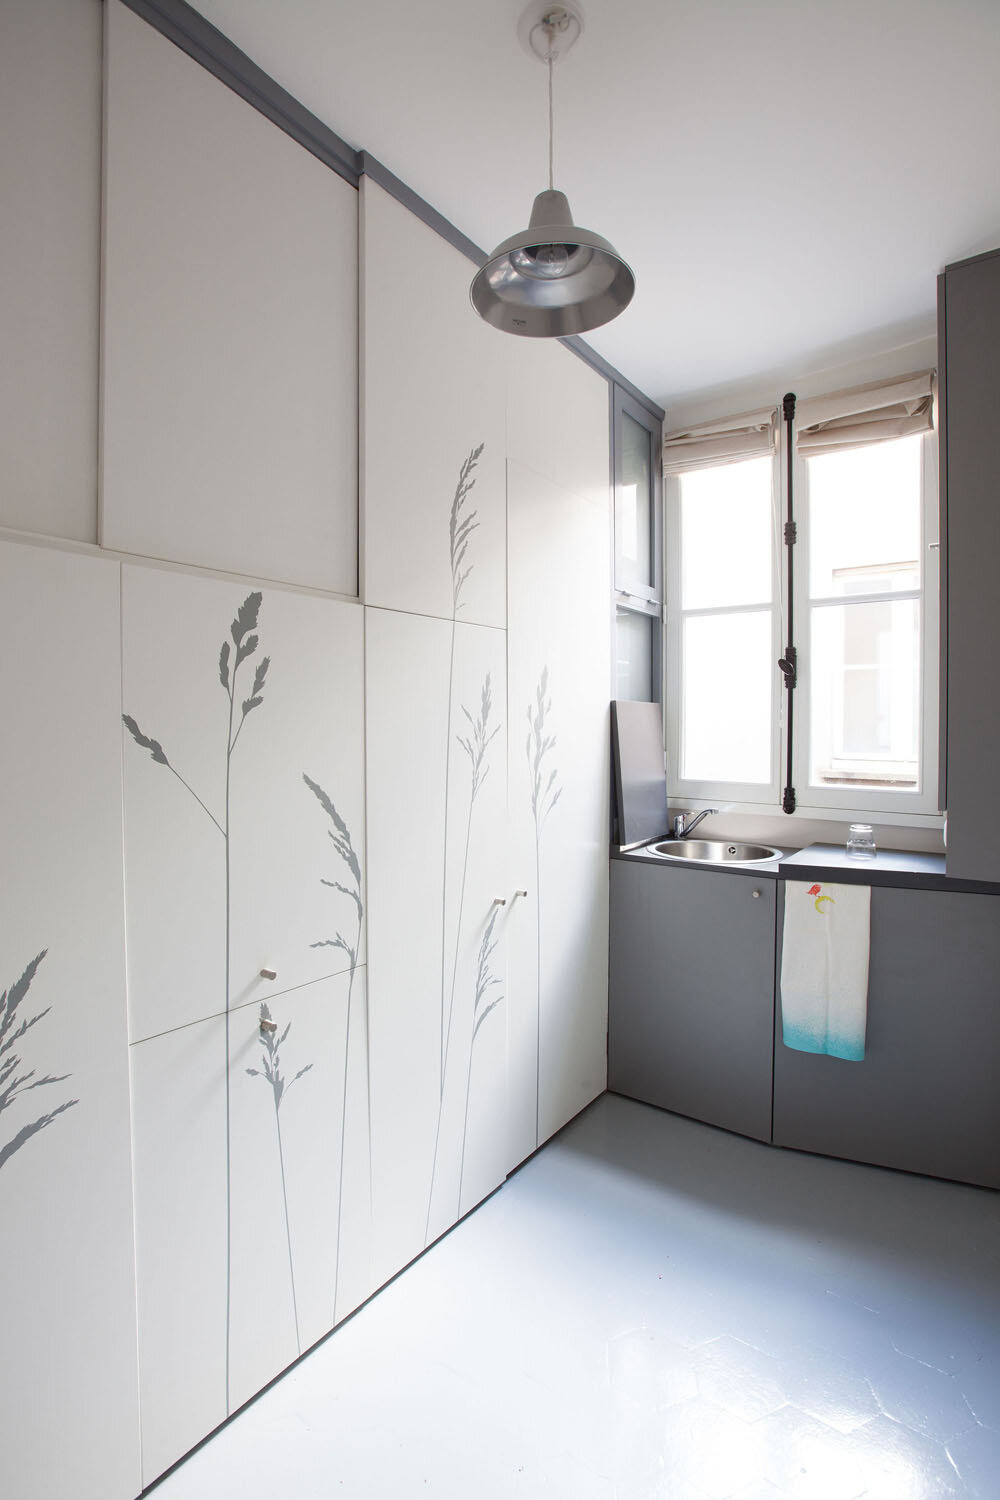 Small Apartment In Paris KitoKo Studio Transform 8 Square Meters   Www.  Homeworlddesign. Com